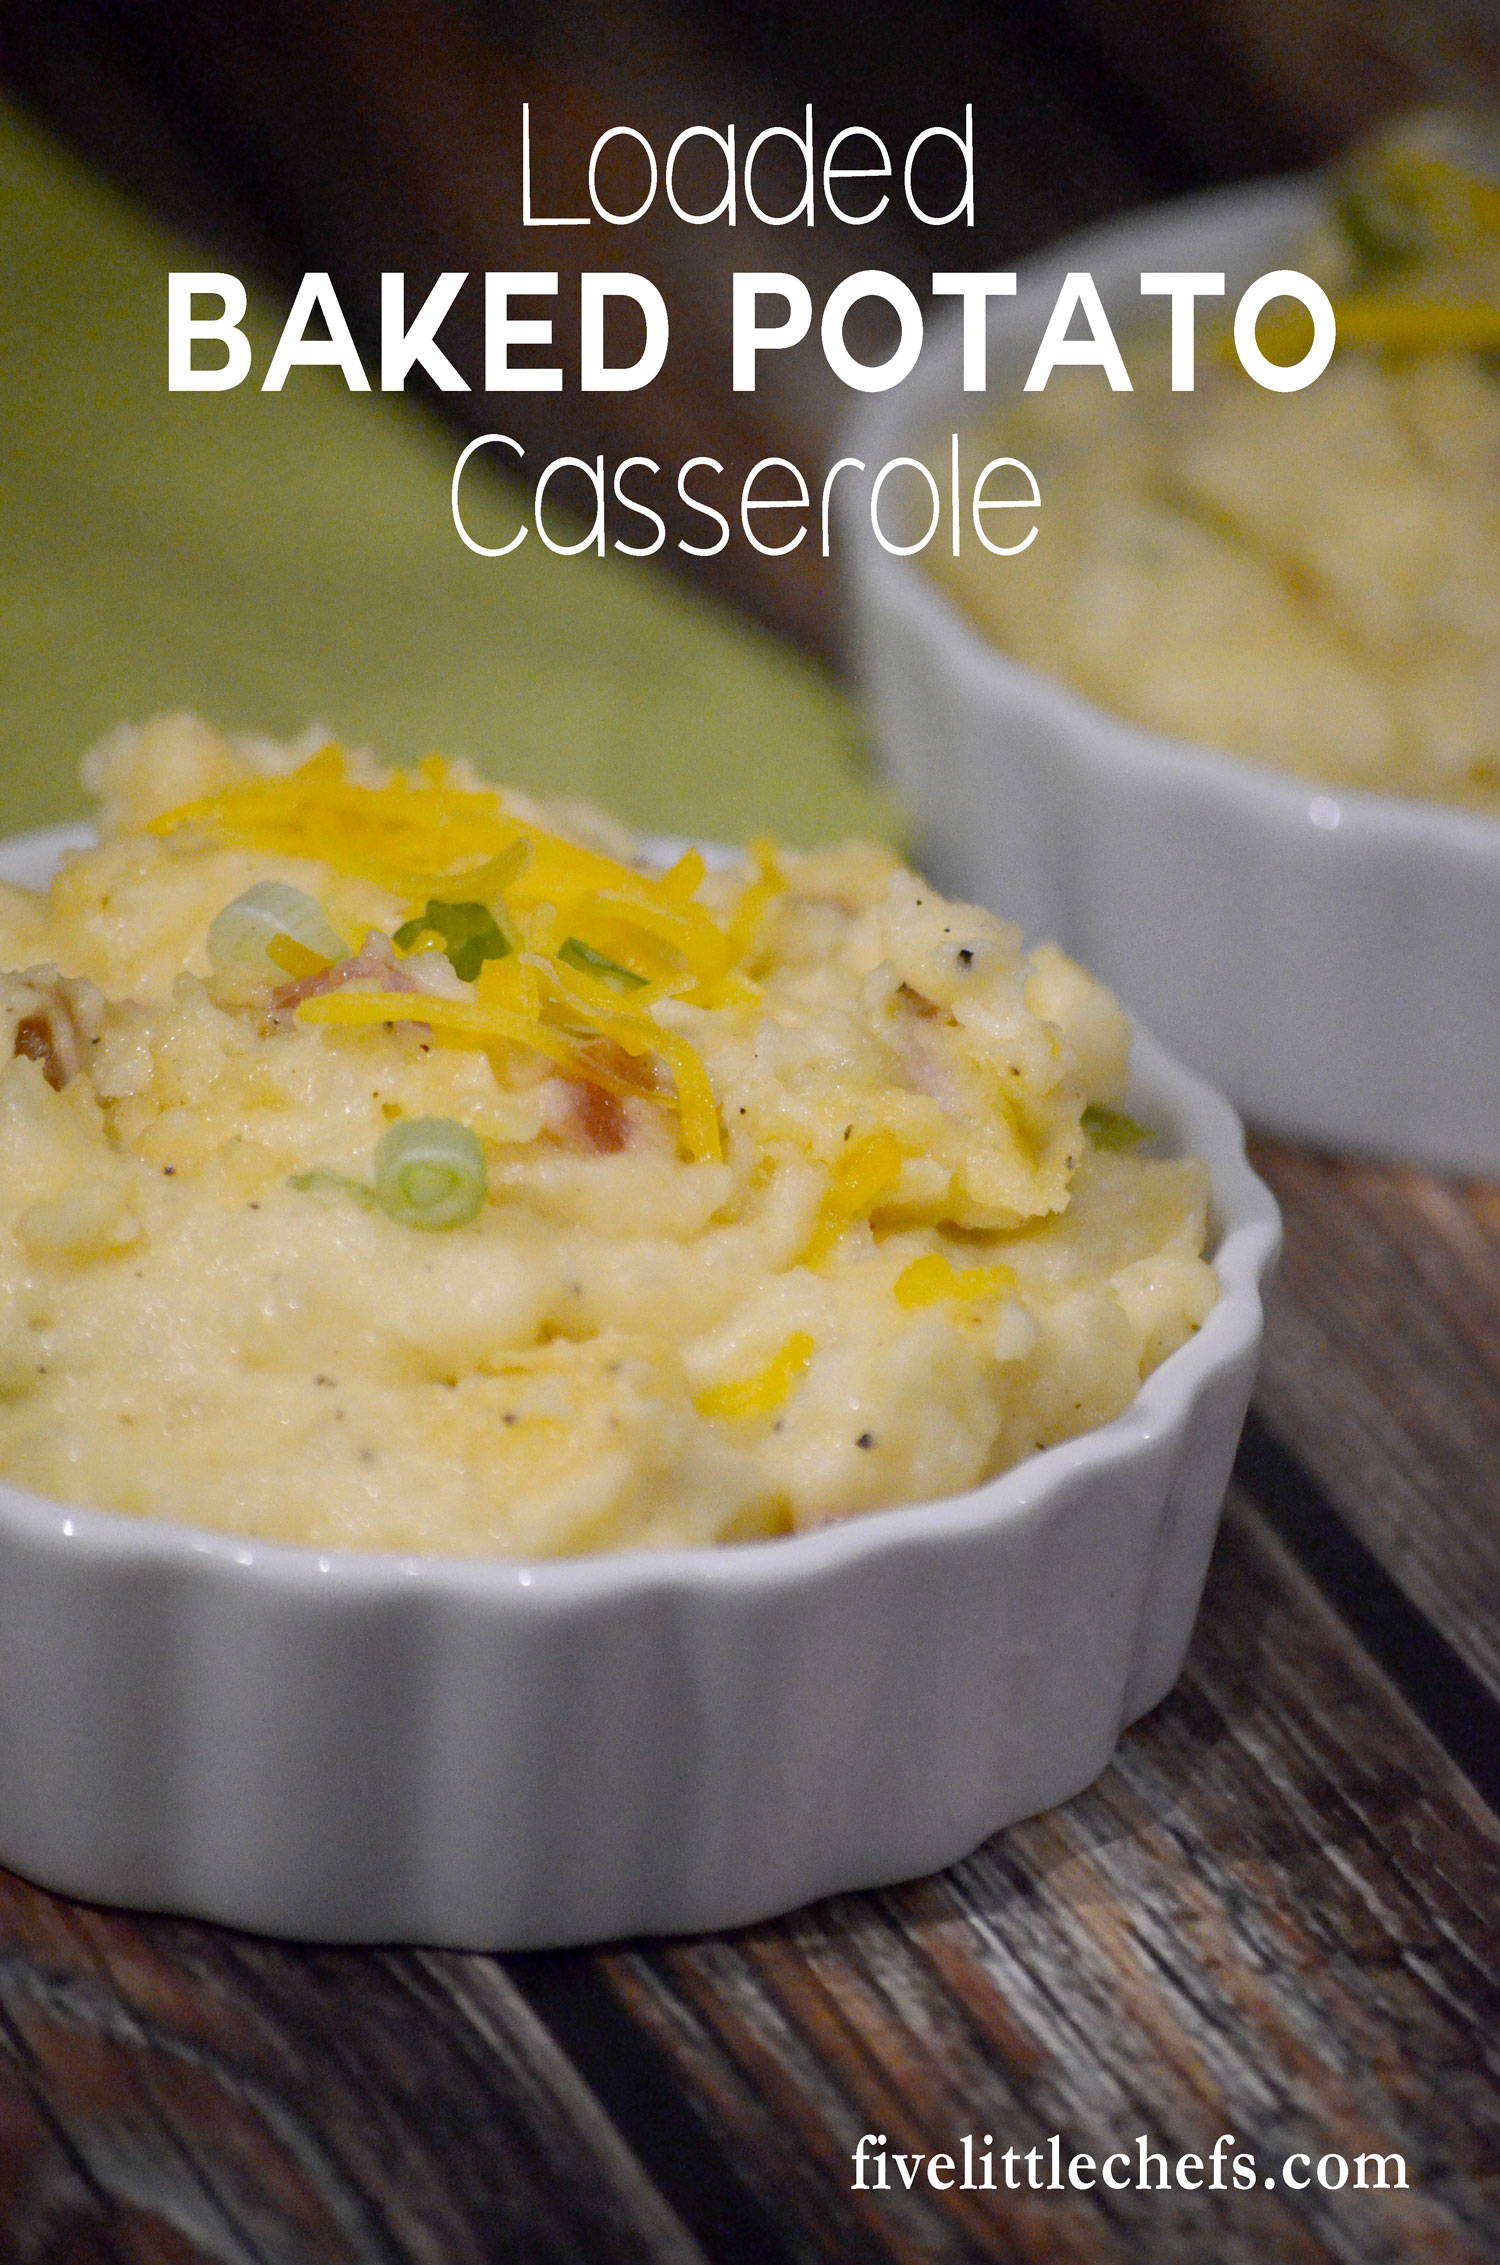 Loaded Baked Potato Casserole is easy to put together. A creamy and cheesy casserole made with bacon, cheese, green onions, potatoes and more.